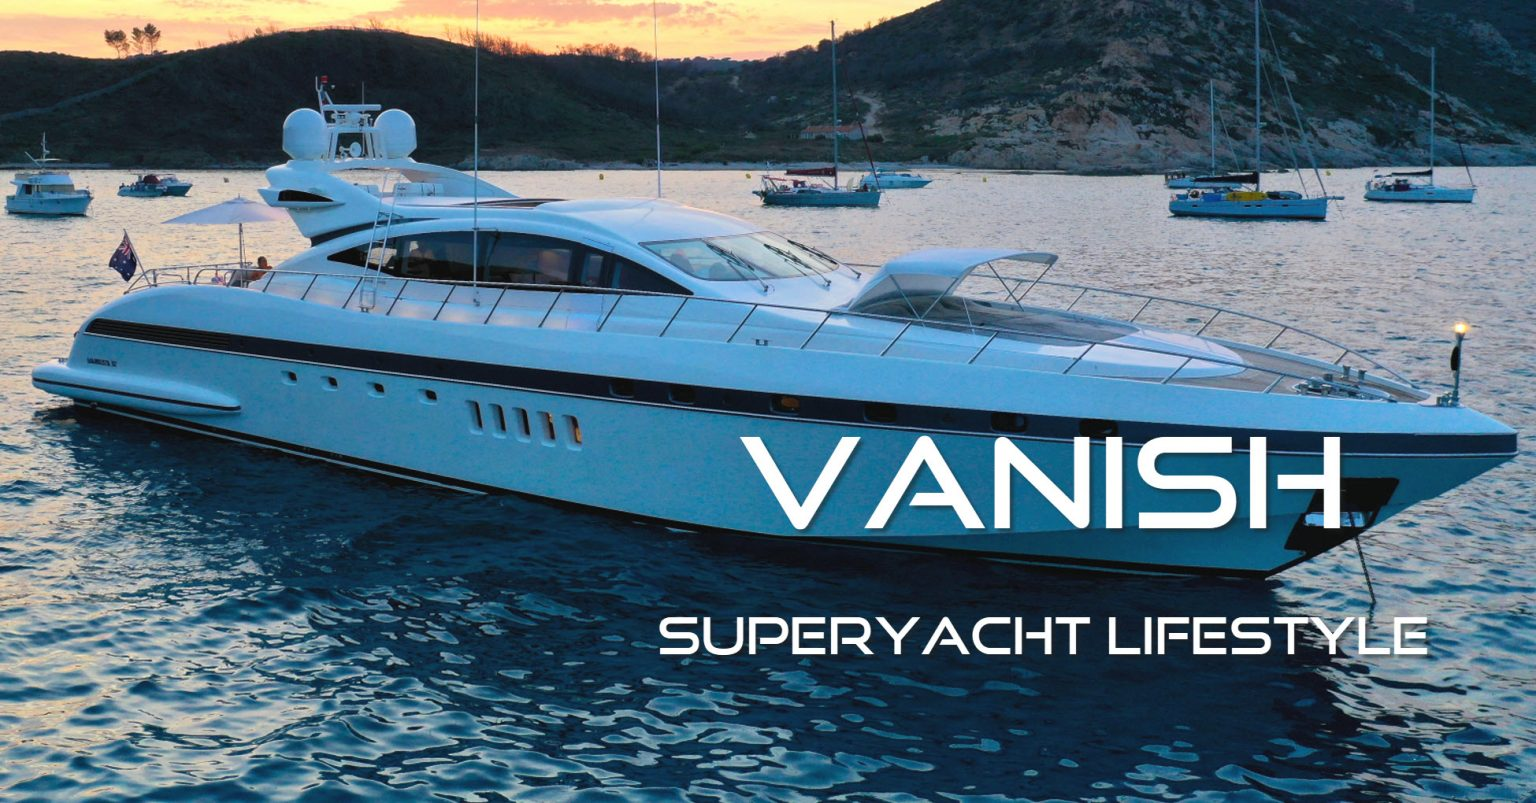 Vanish Superyacht Lifestyle